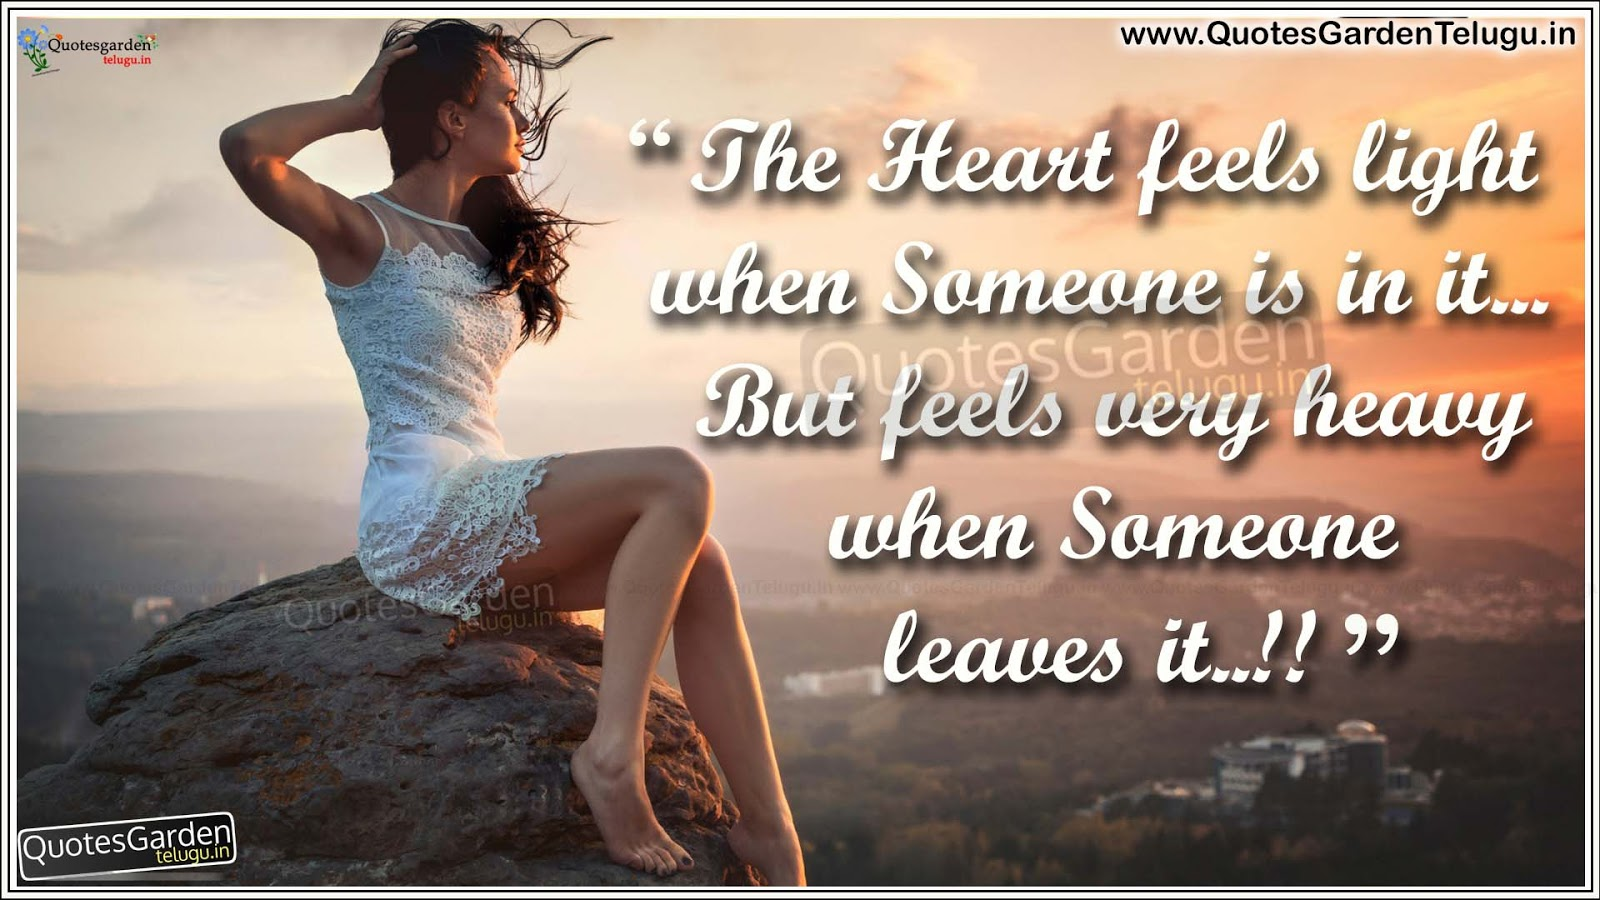 Love Wallpaper With Heart Touching Quotes : Heart touching Love Quotes HD love wallpapers QUOTES GARDEN TELUGU Telugu Quotes English ...